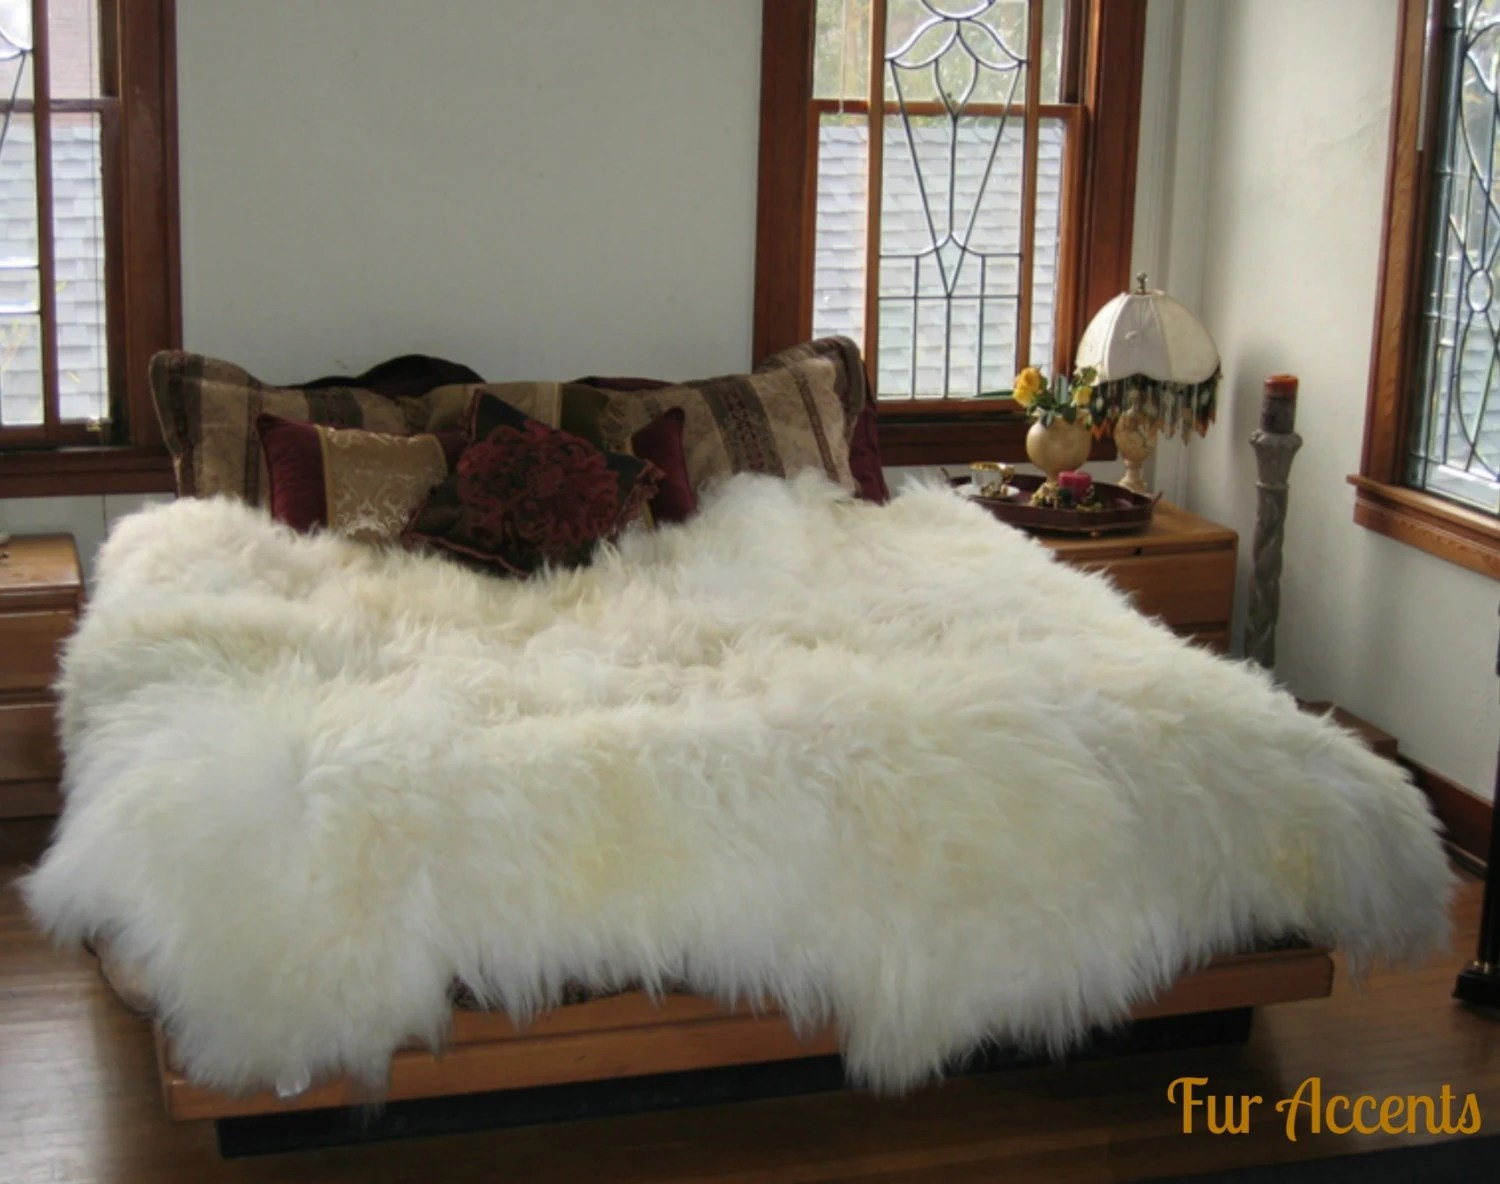 Vloerkleed Bont Shag Sheepskin Faux Fur Area Rug Thick Mongolian By Furaccents